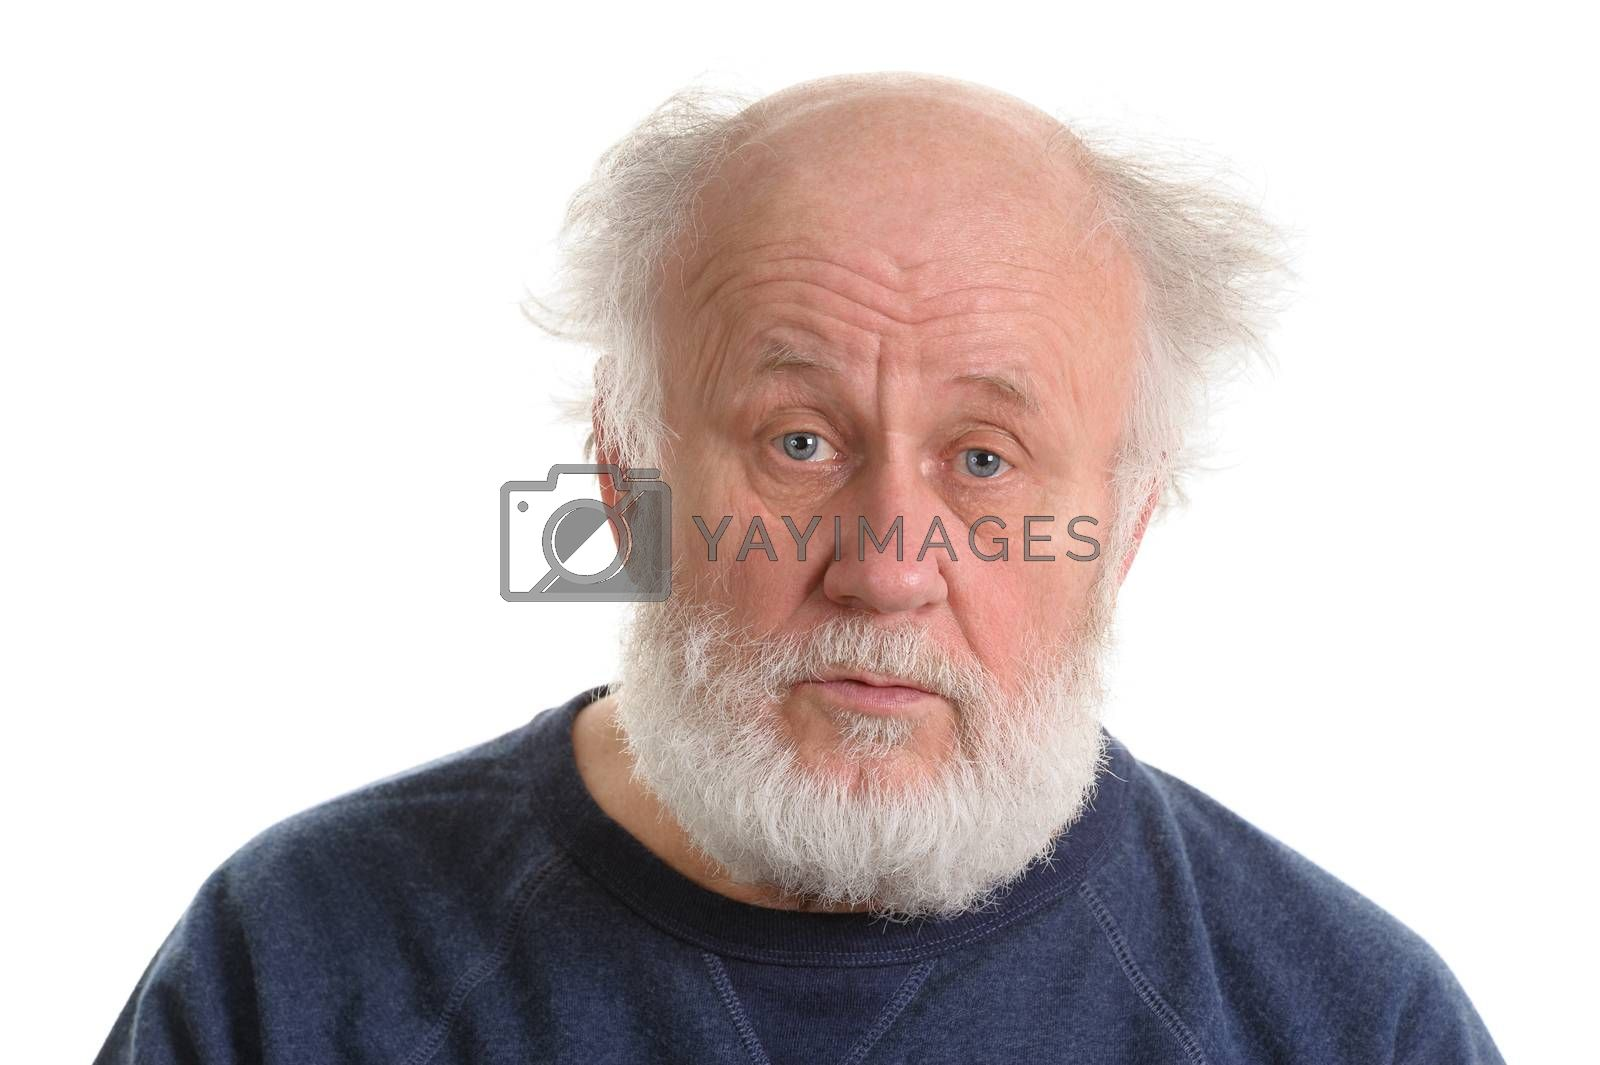 calm and sad depressing old bald man isolated portrait isolated on white